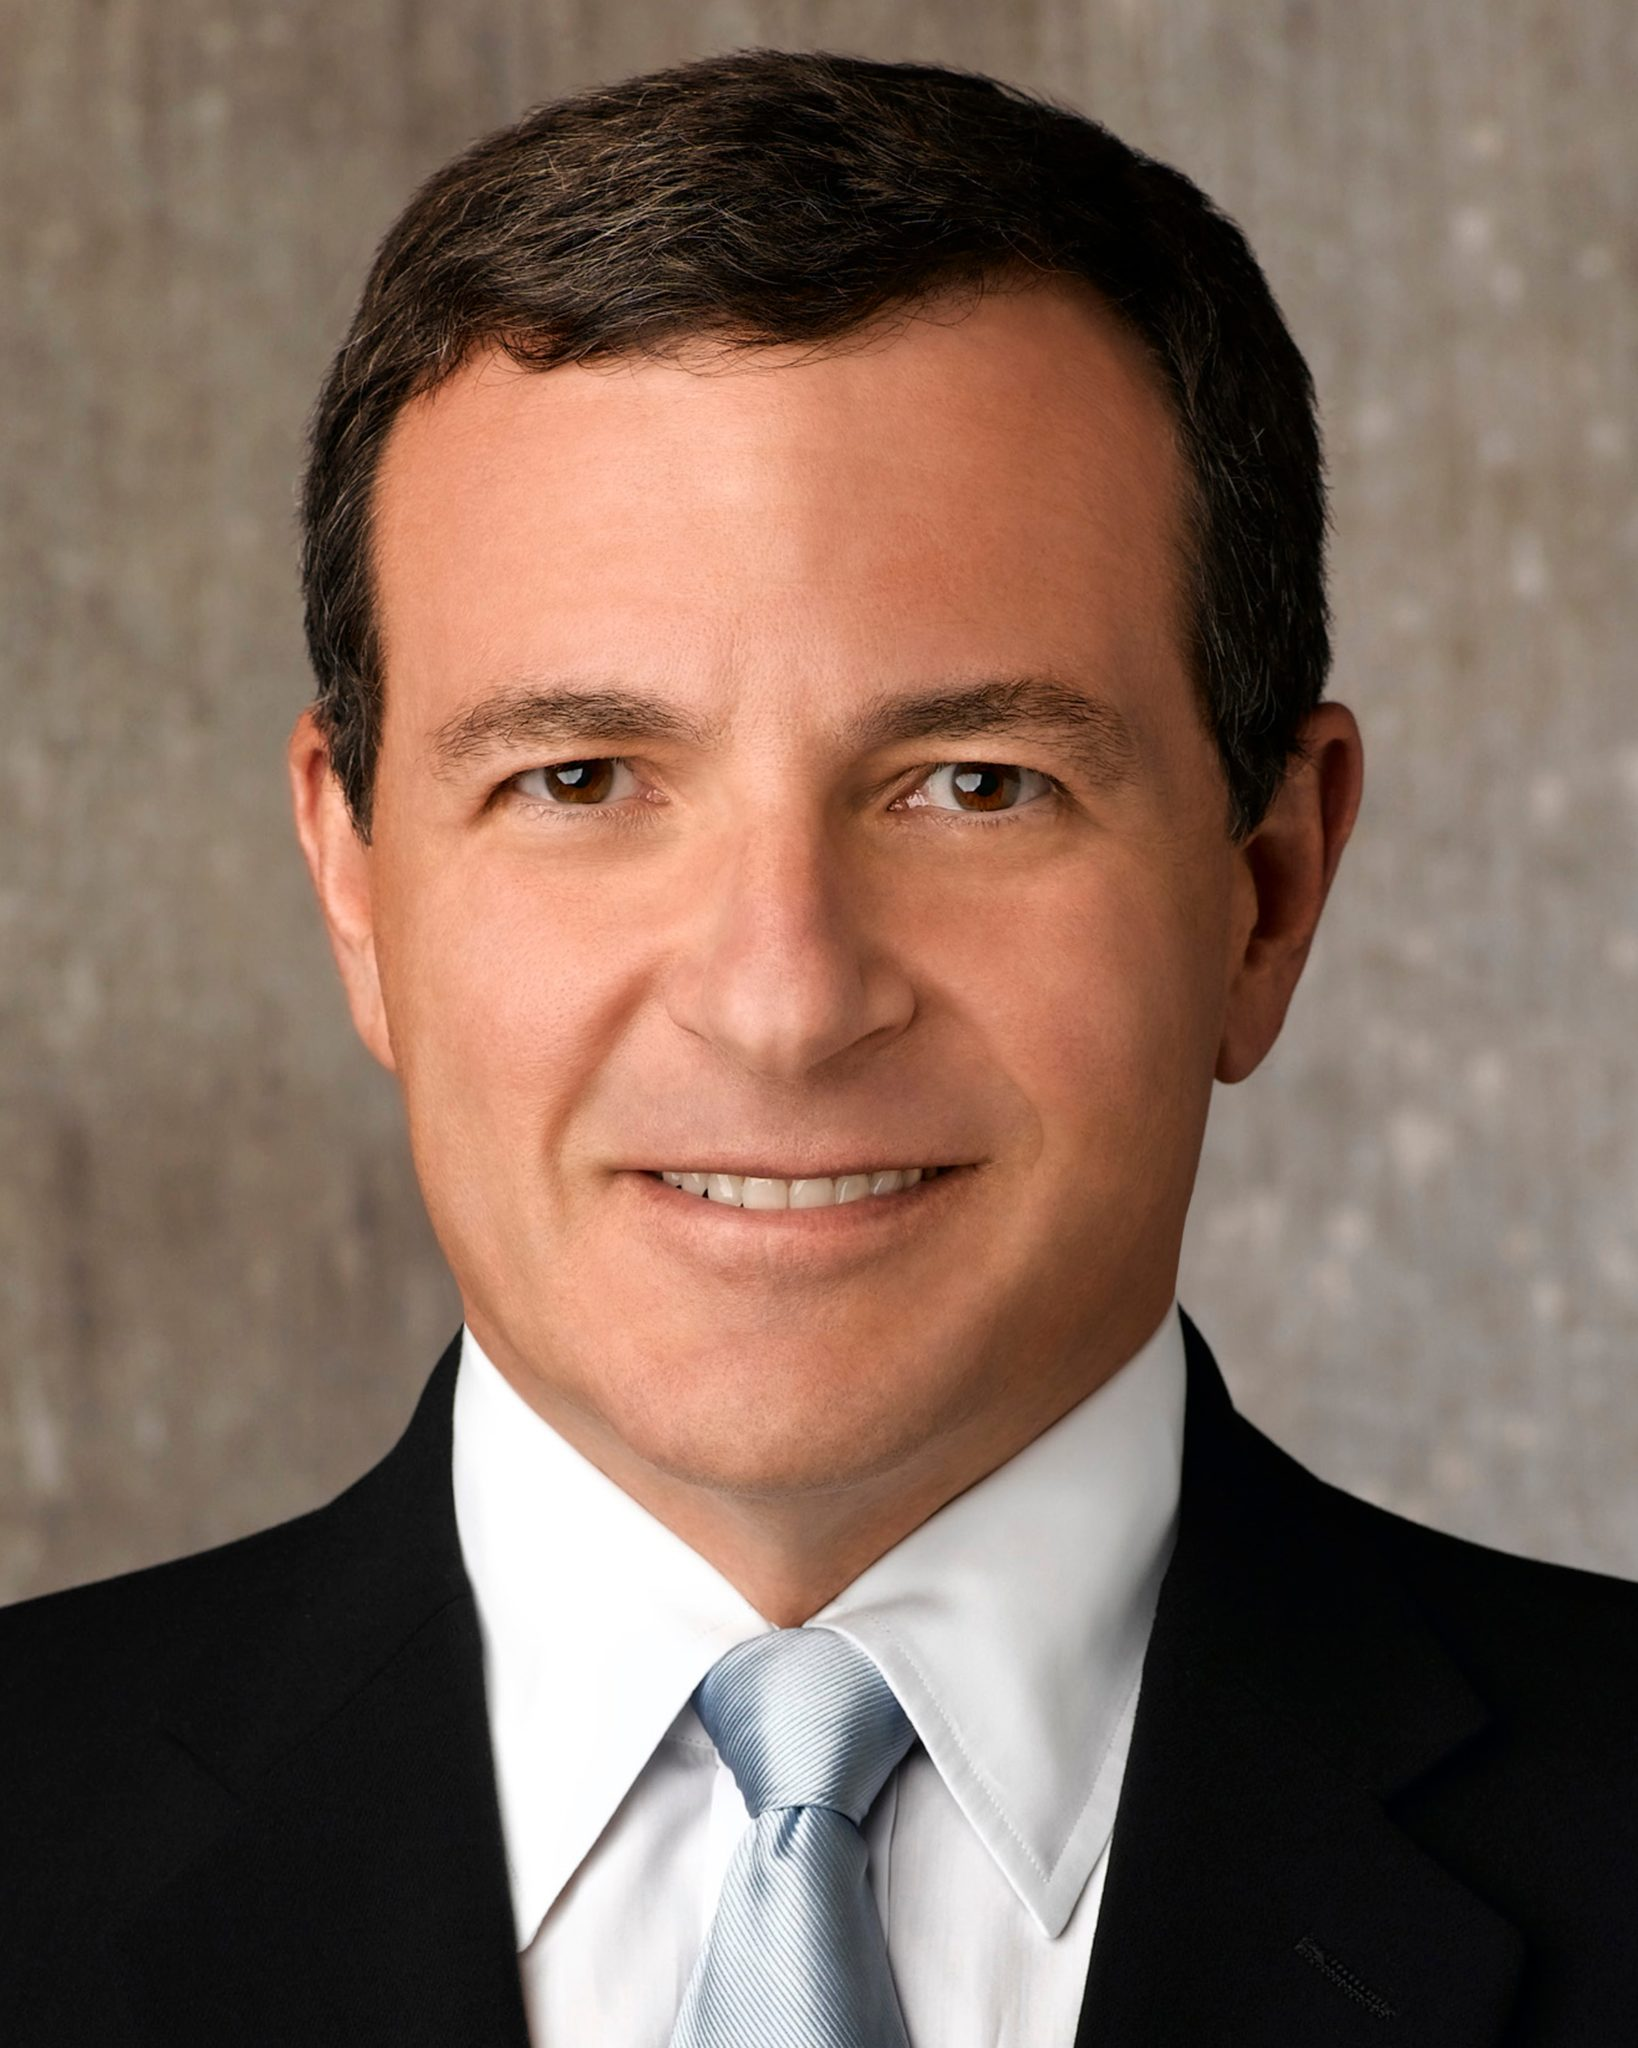 Bob Iger Participating in Q&A at Glodman Sachs Conference